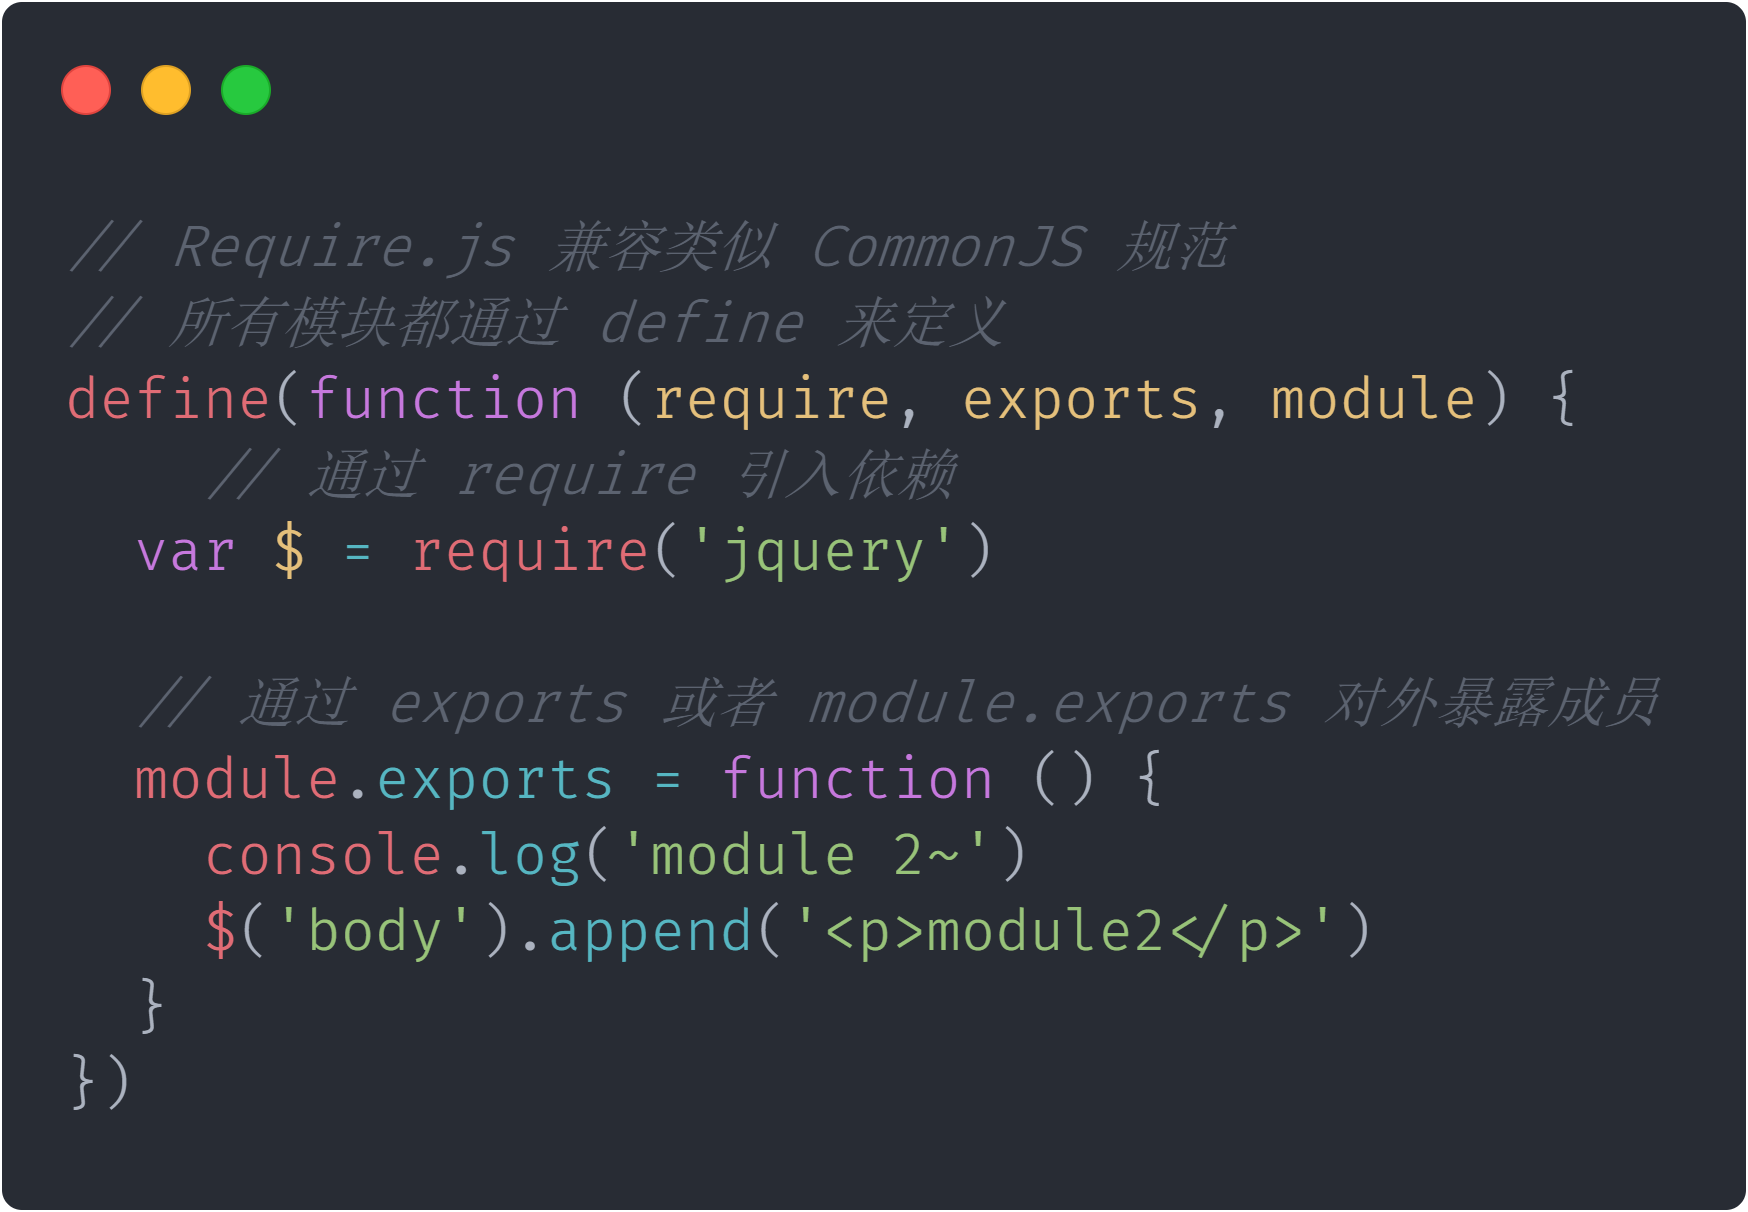 Sea.js 被 Require.js 兼容了